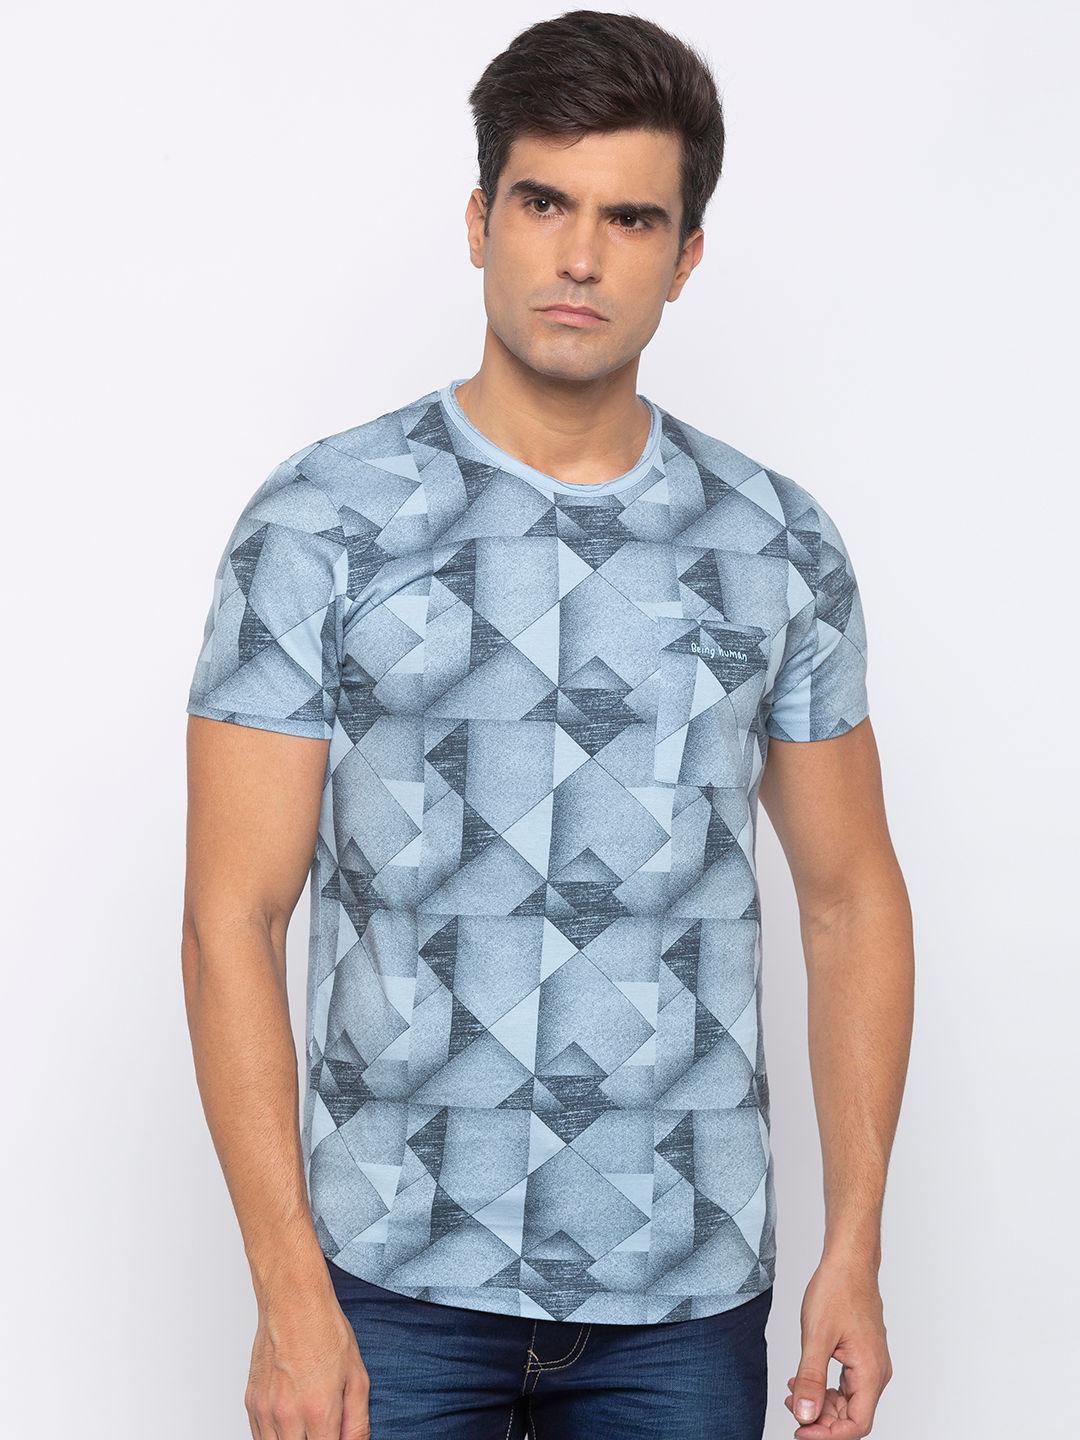 Mens Short Sleeve Crew Neck T-shirt with all over print